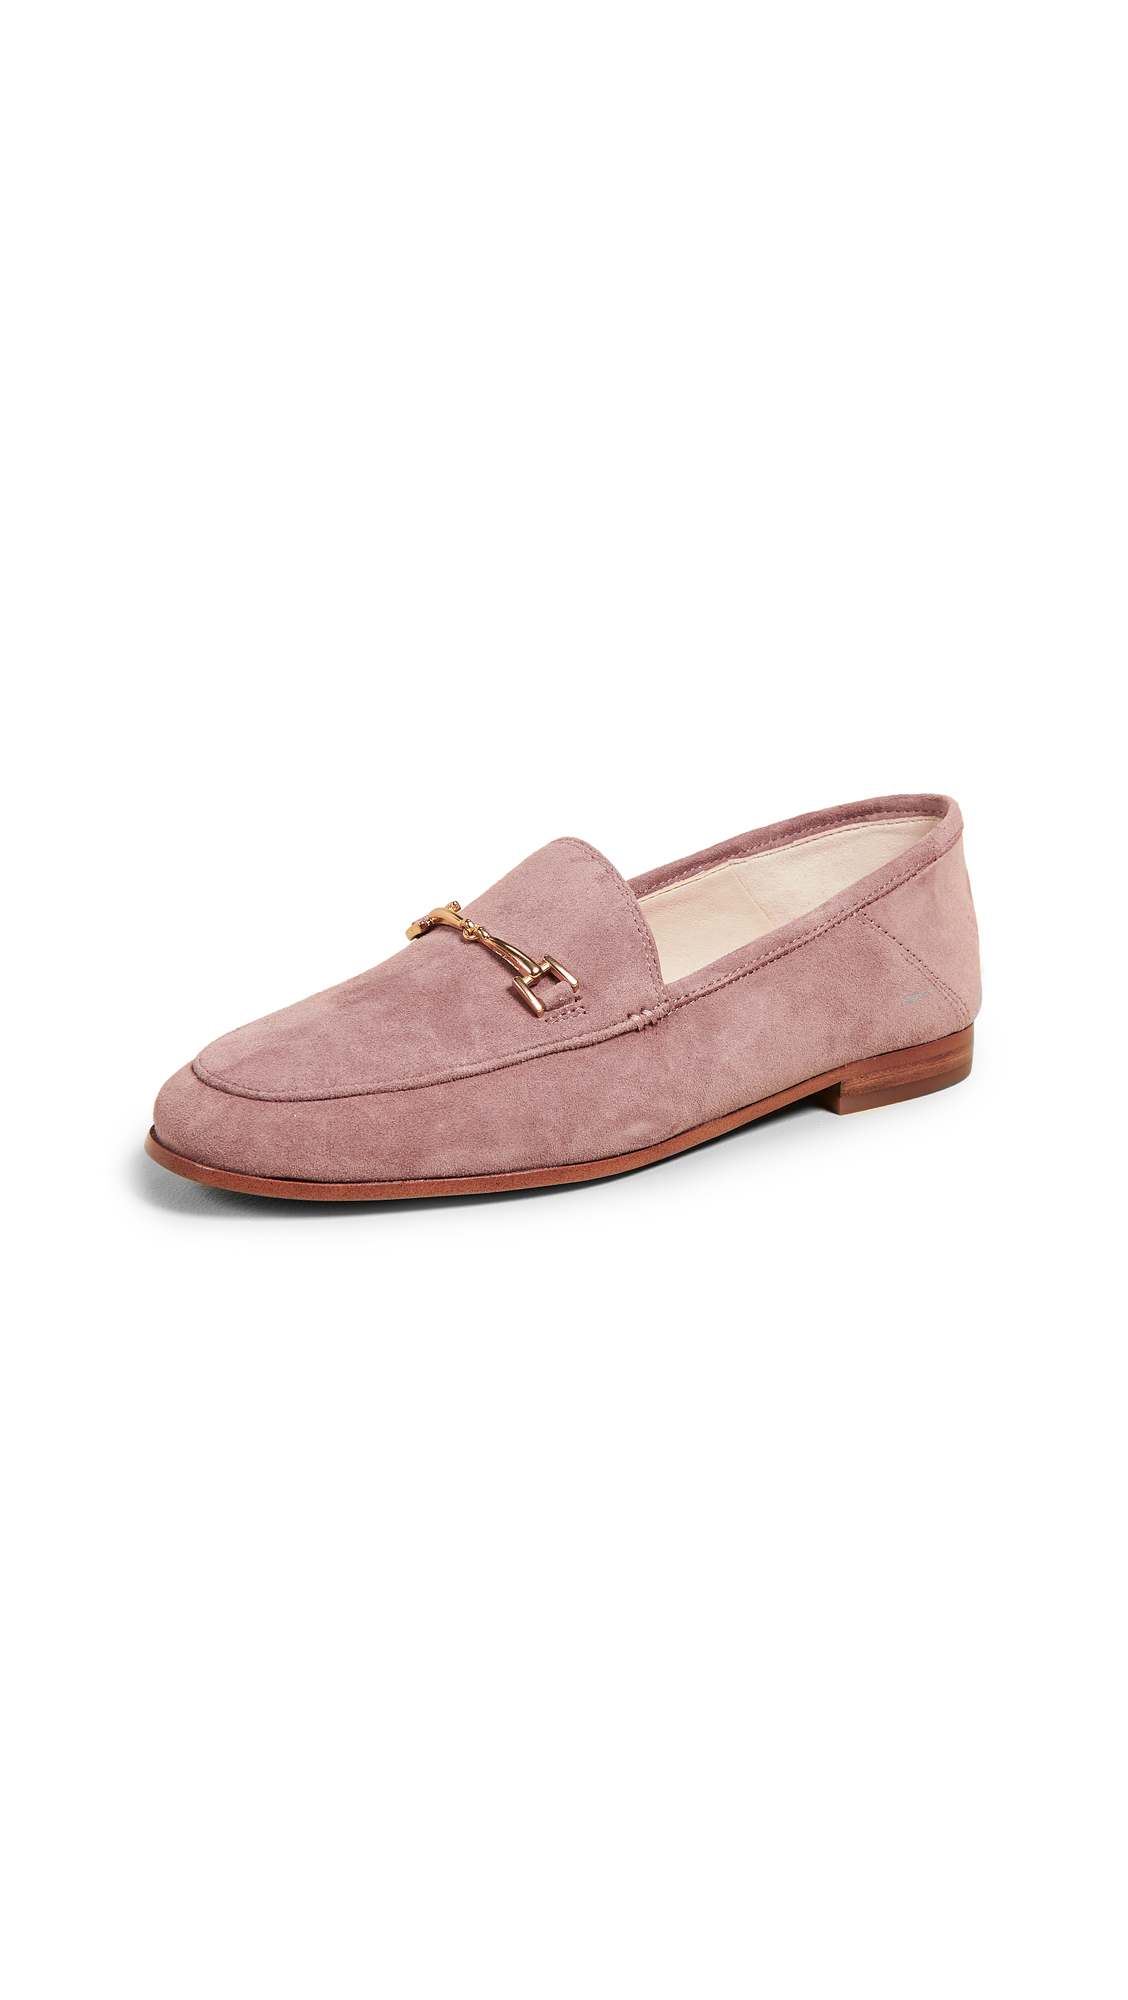 Sam Edelman Loraine Suede Loafers - Dusty Rose